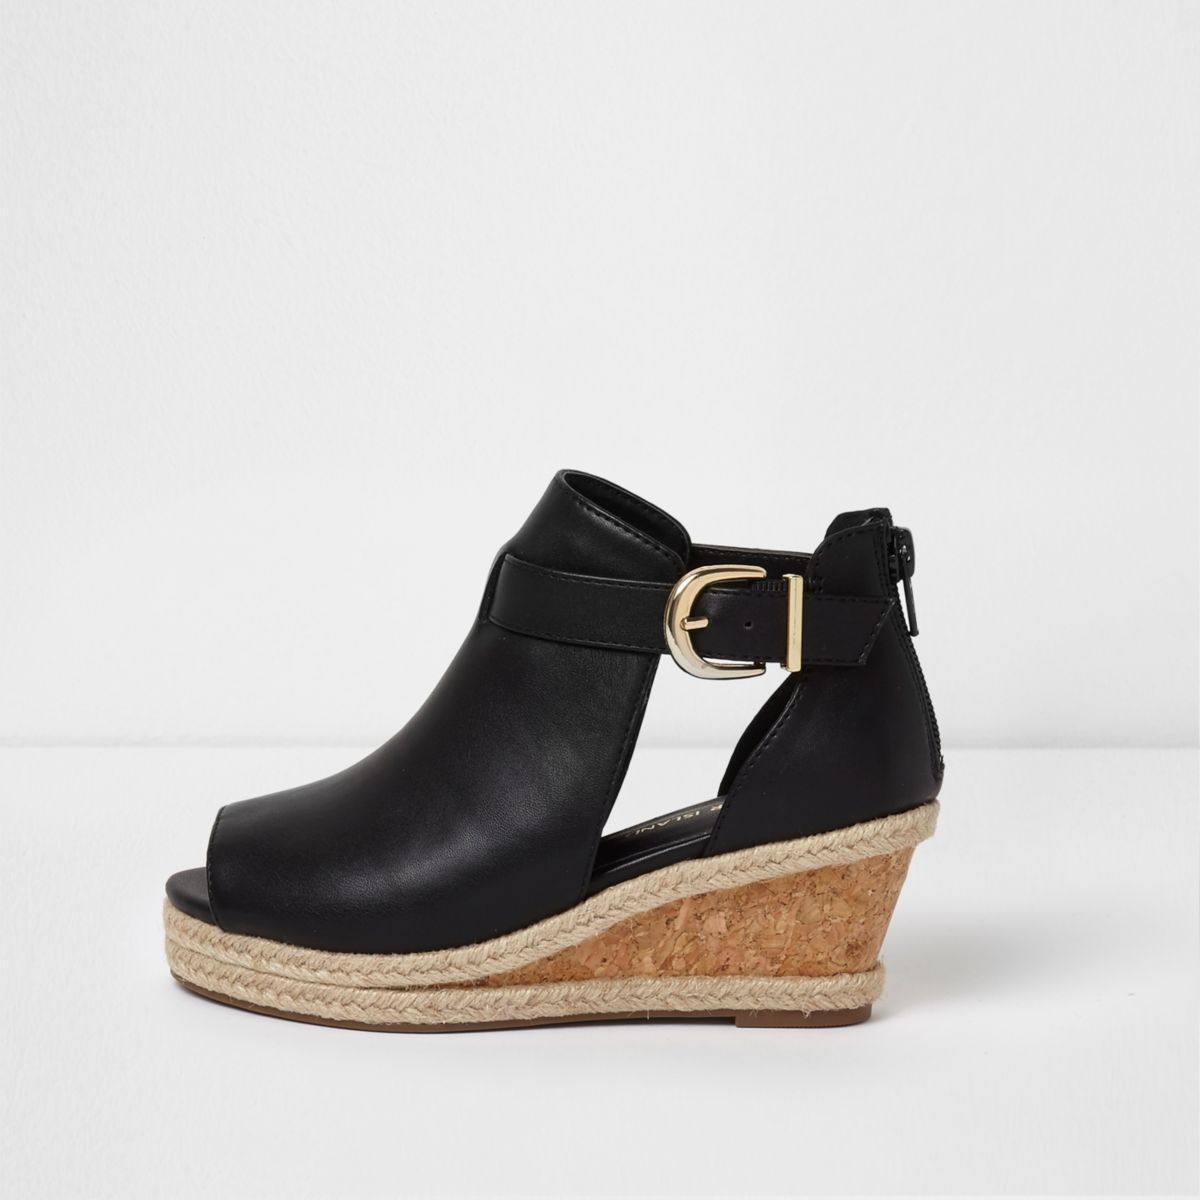 Girls black espadrille wedge shoe boots